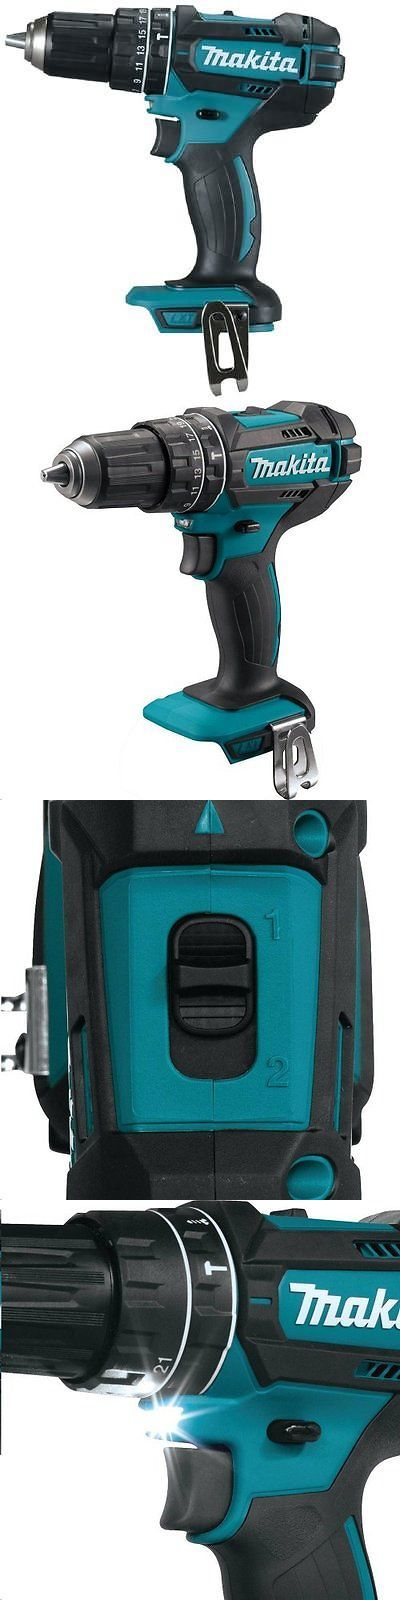 Cordless Drills 71302: New Makita Xph10z 18V Lxt Cordless Li-Ion 1 2 Hammer Drill Driver Tool Only -> BUY IT NOW ONLY: $49.89 on eBay!